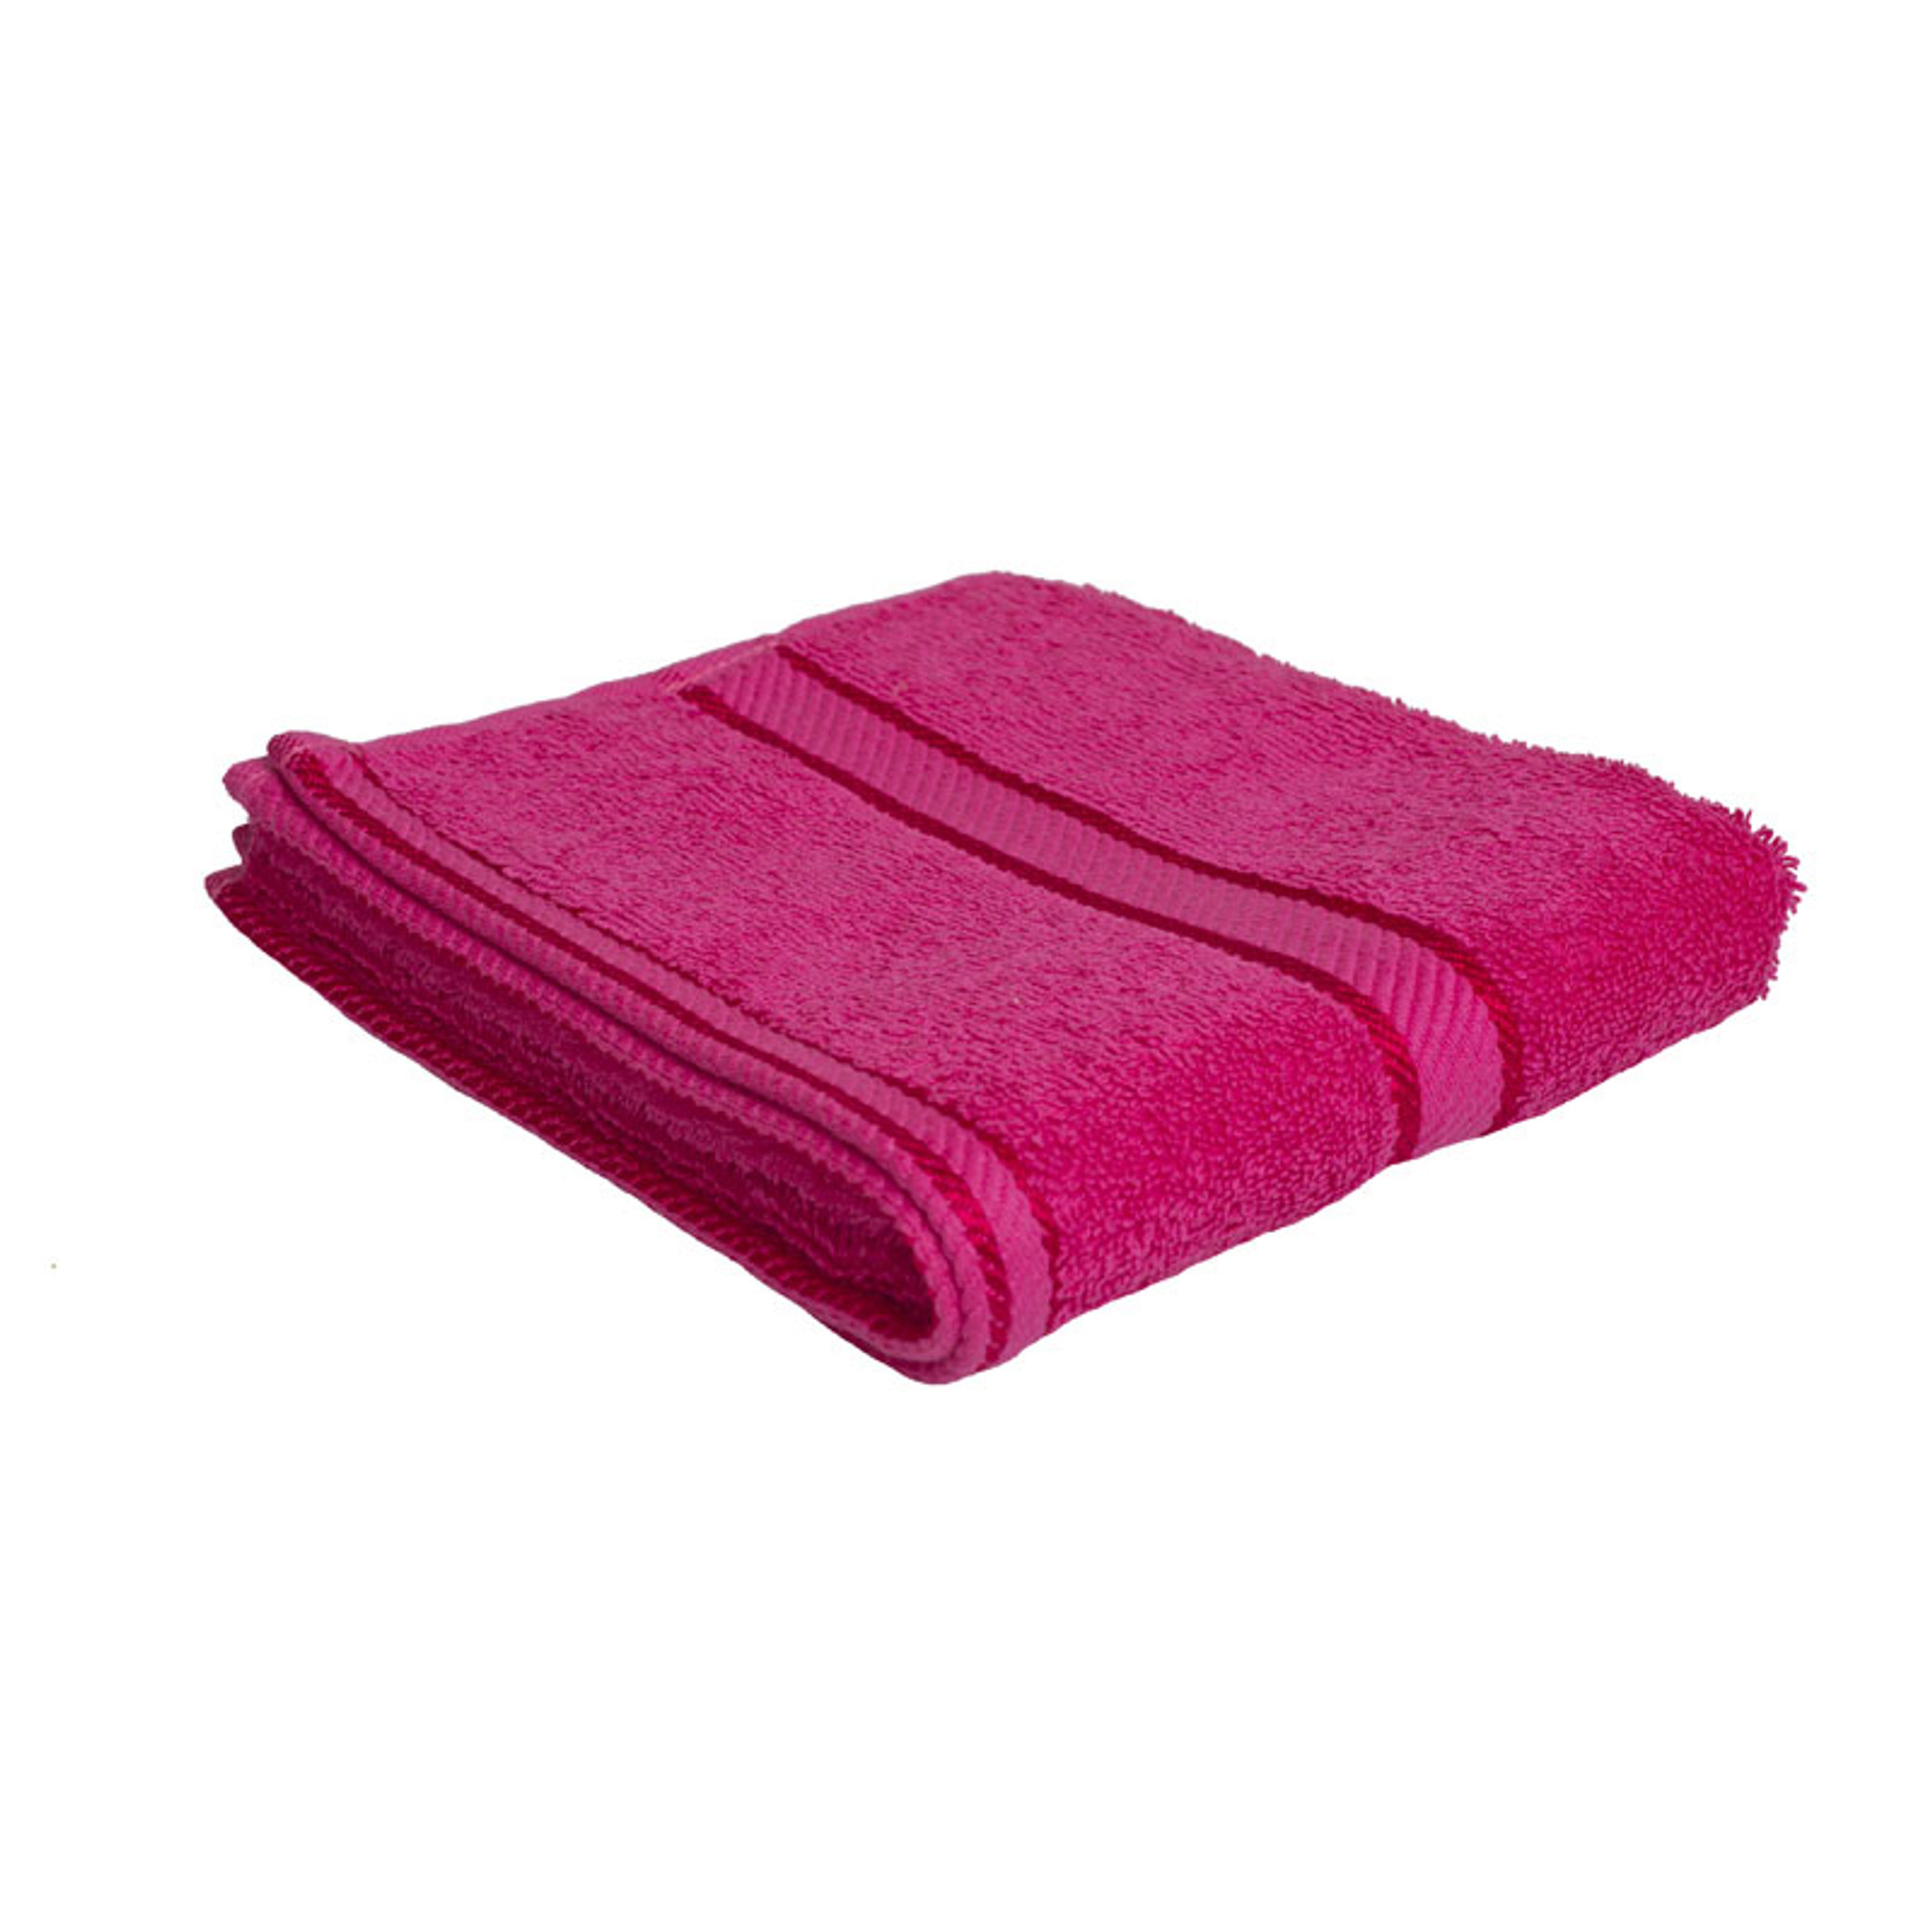 Hot Pink Towels Bathroom: 100% Cotton Fuchsia / Hot Pink Hand Towel By Kingtex